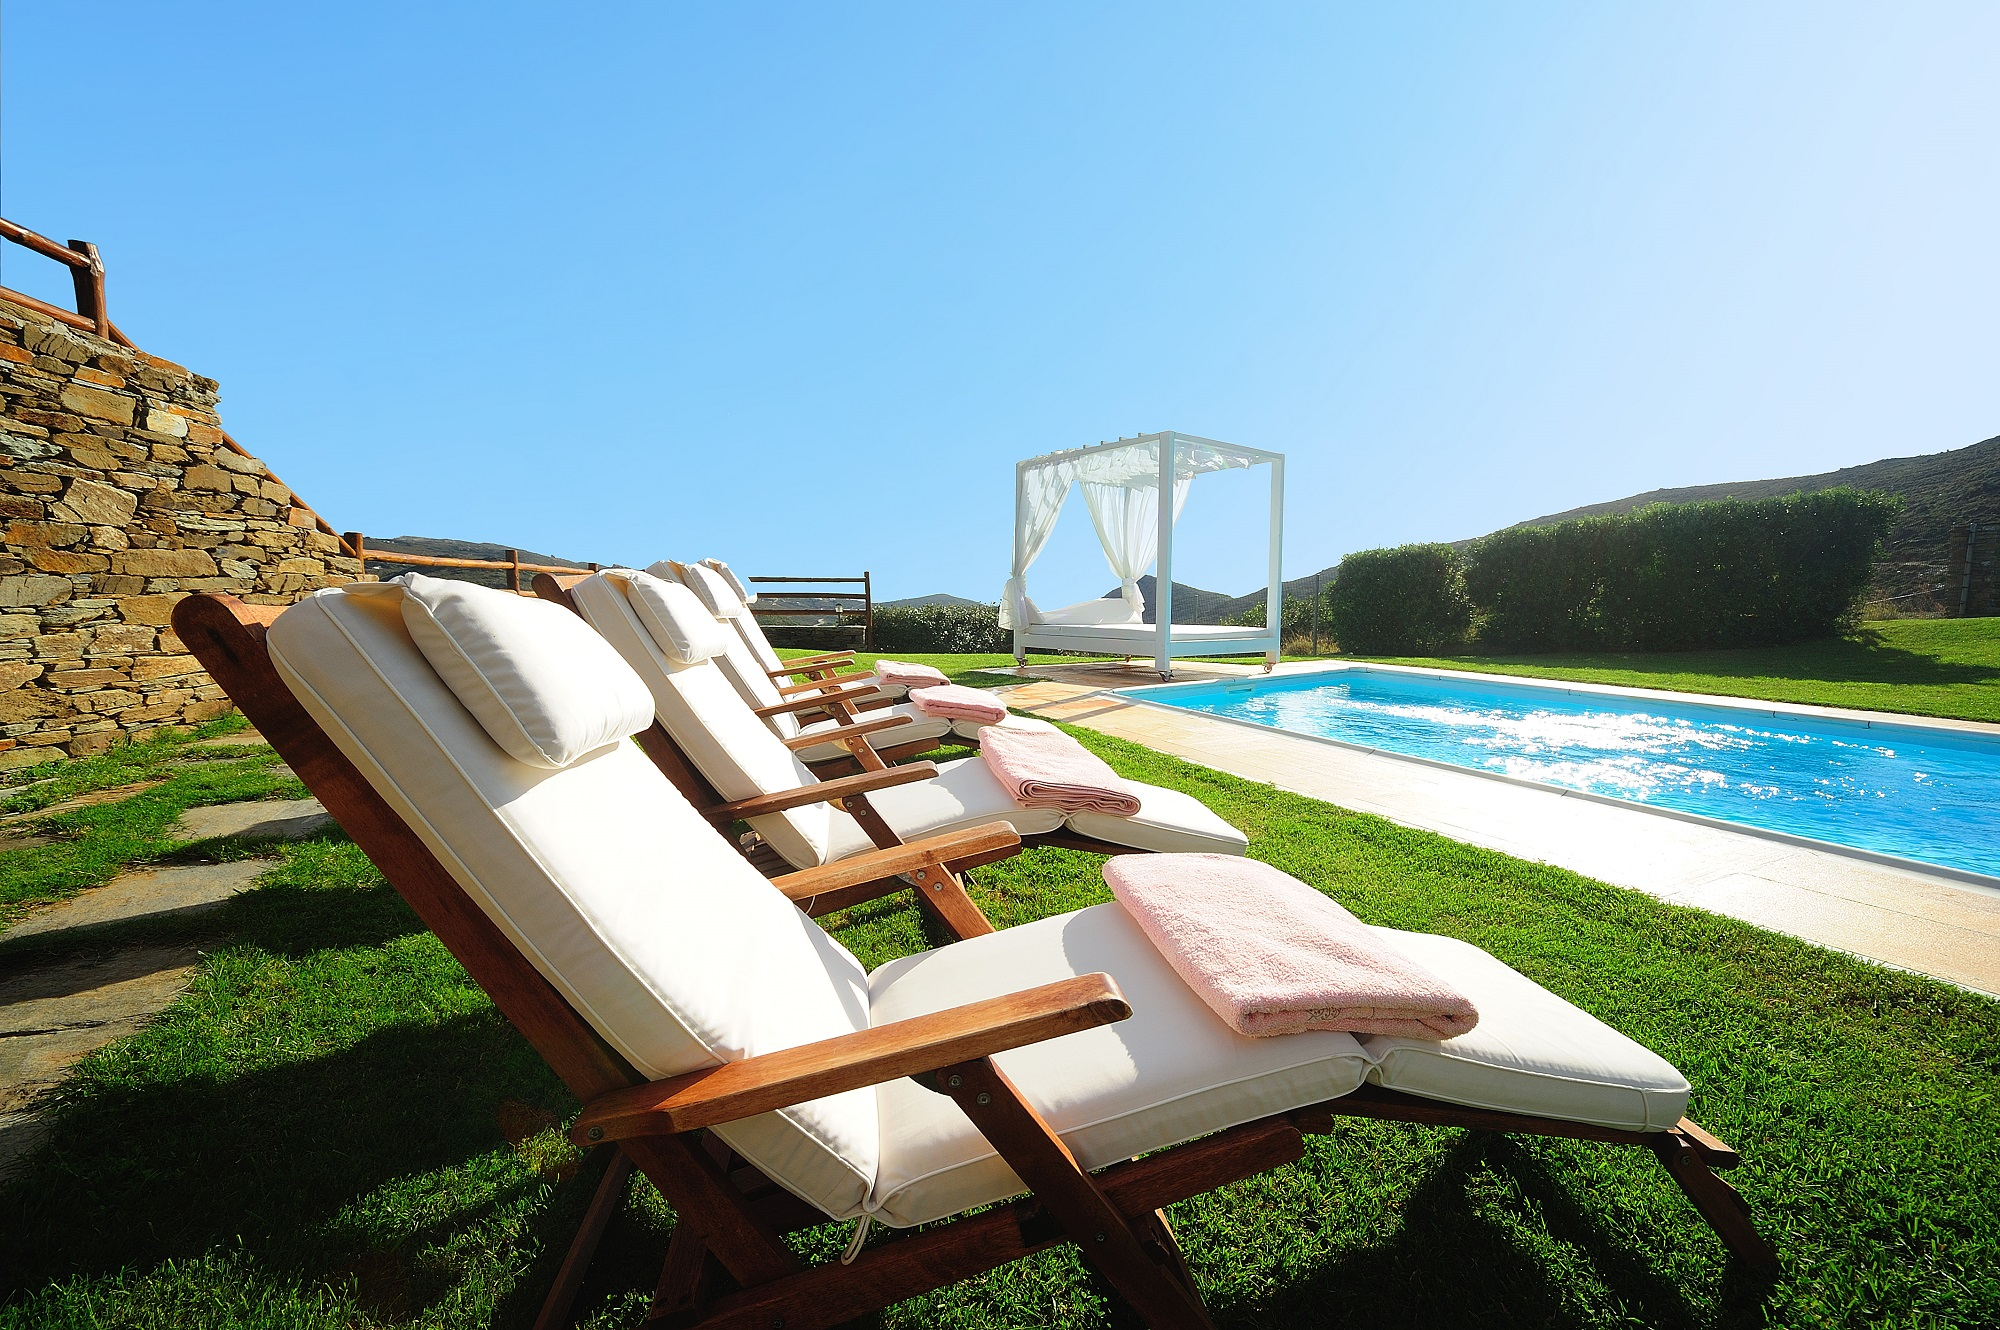 Sun lounges by the pool in the garden of Villa Helias